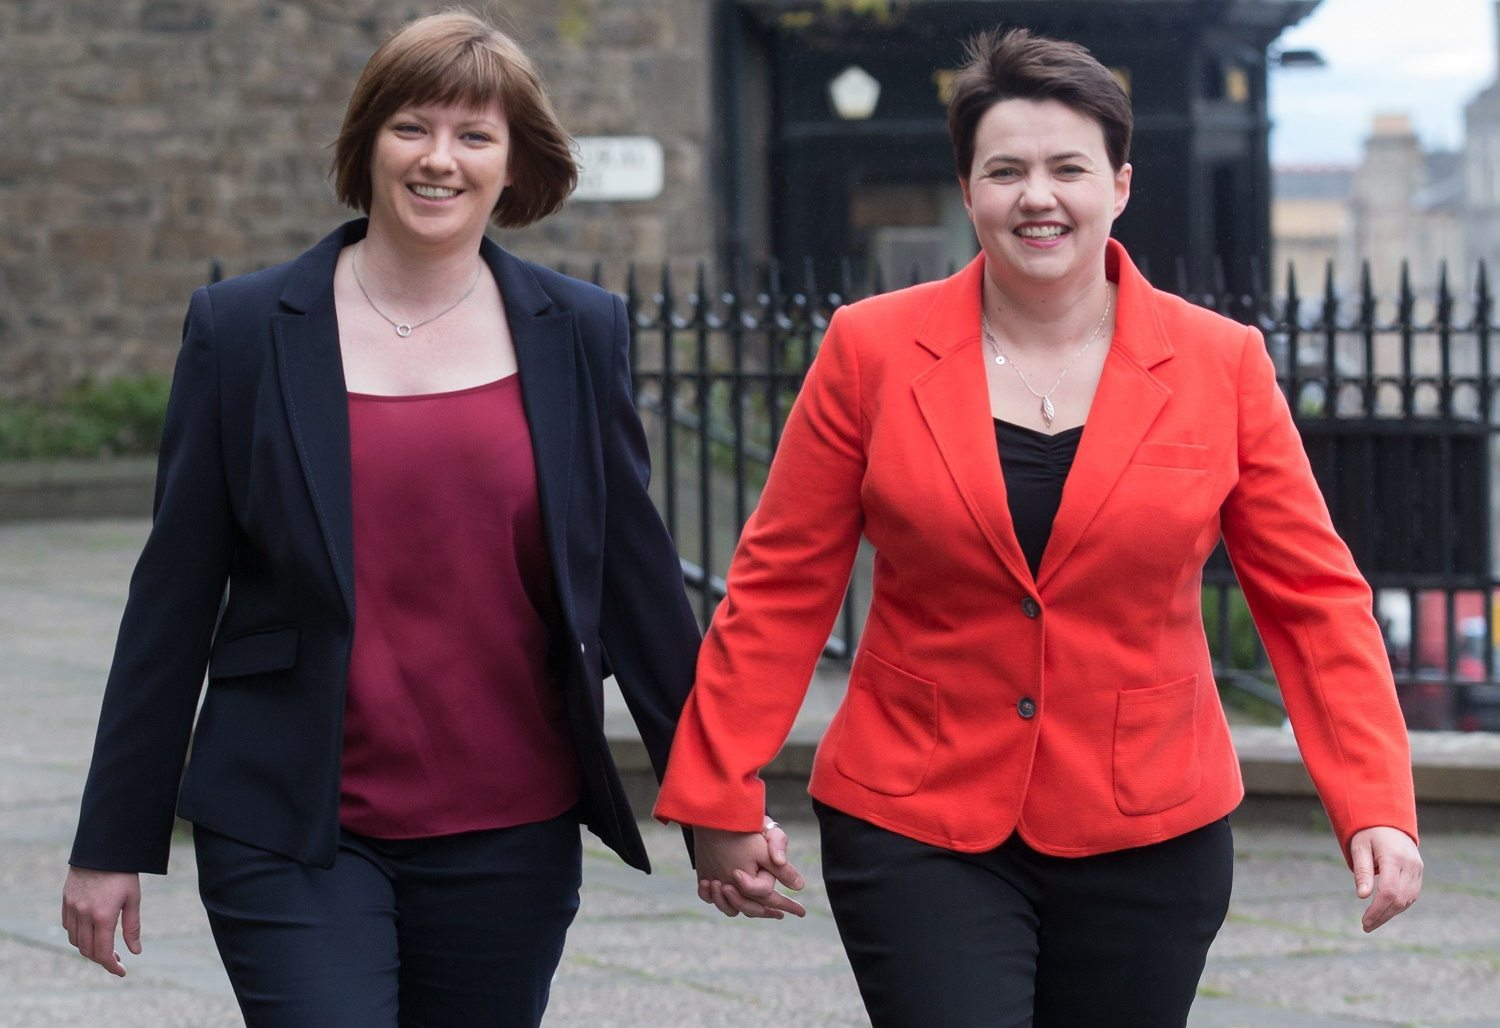 Scottish Conservative leader Davidson announces pregnancy